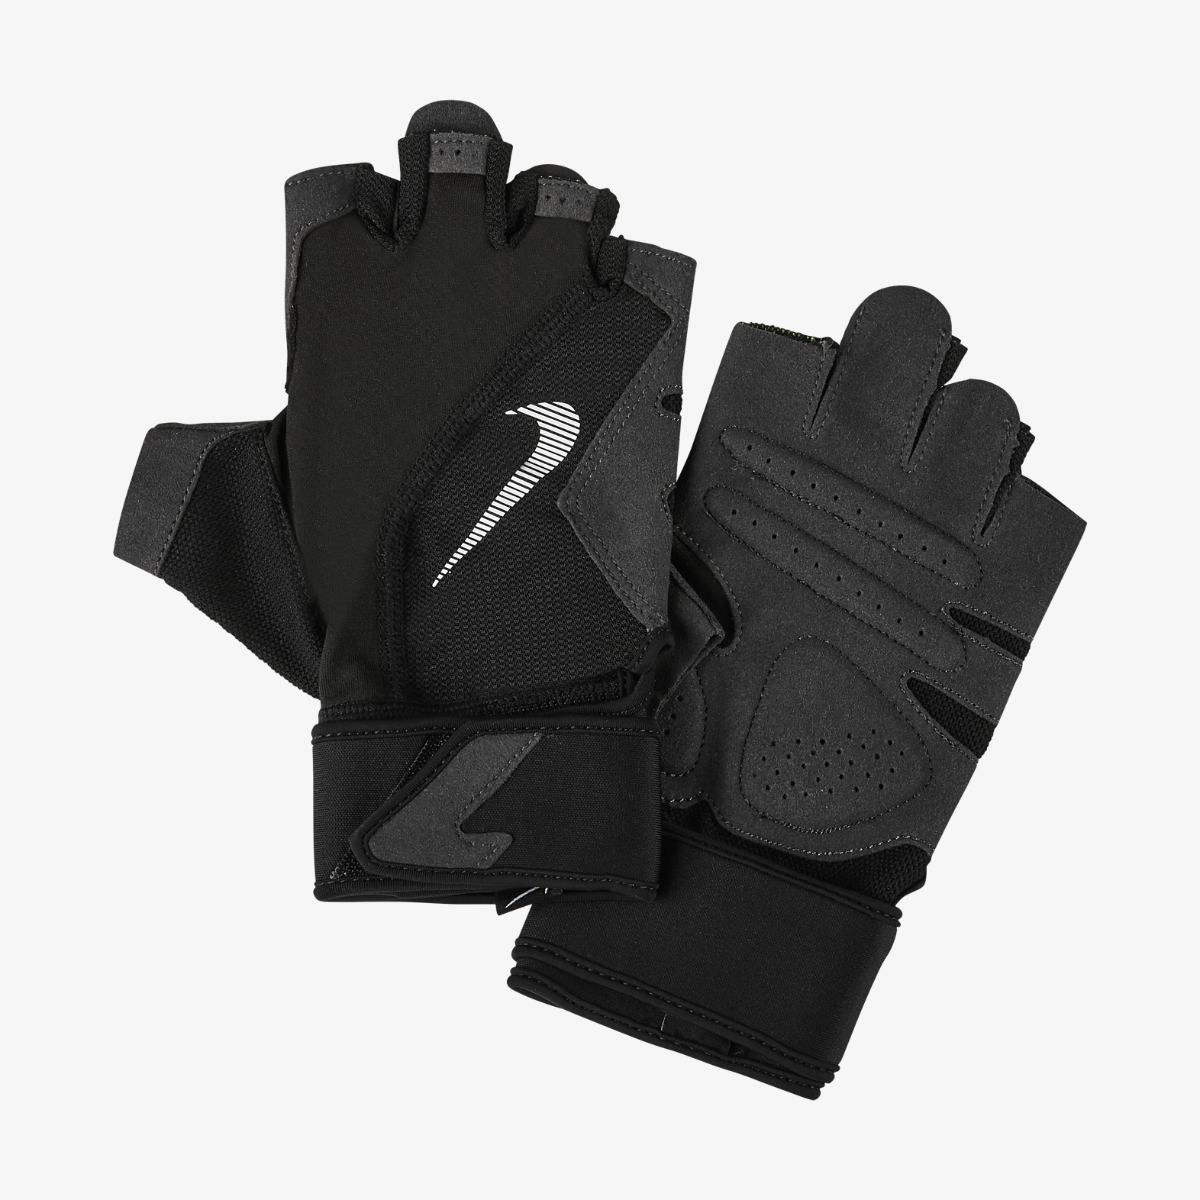 Перчатки для тренинга Nike MENS PREMIUM FITNESS GLOVES BLACK/VOLT/BLACK/WHITE L